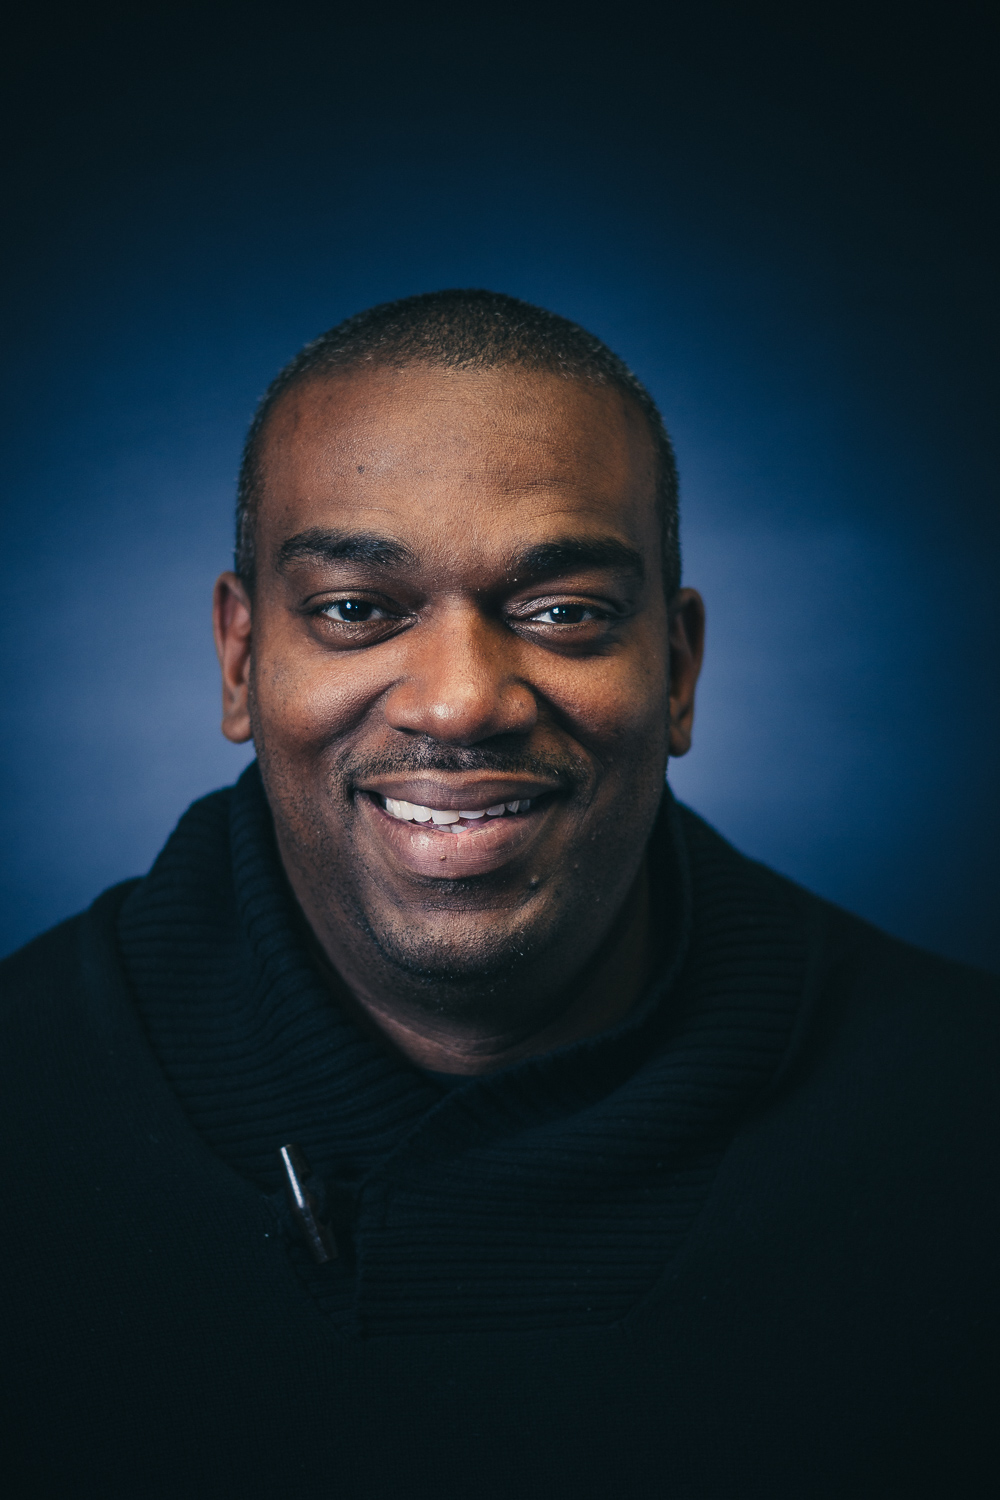 Adrian Crawford, Lead Pastor of Engage Church